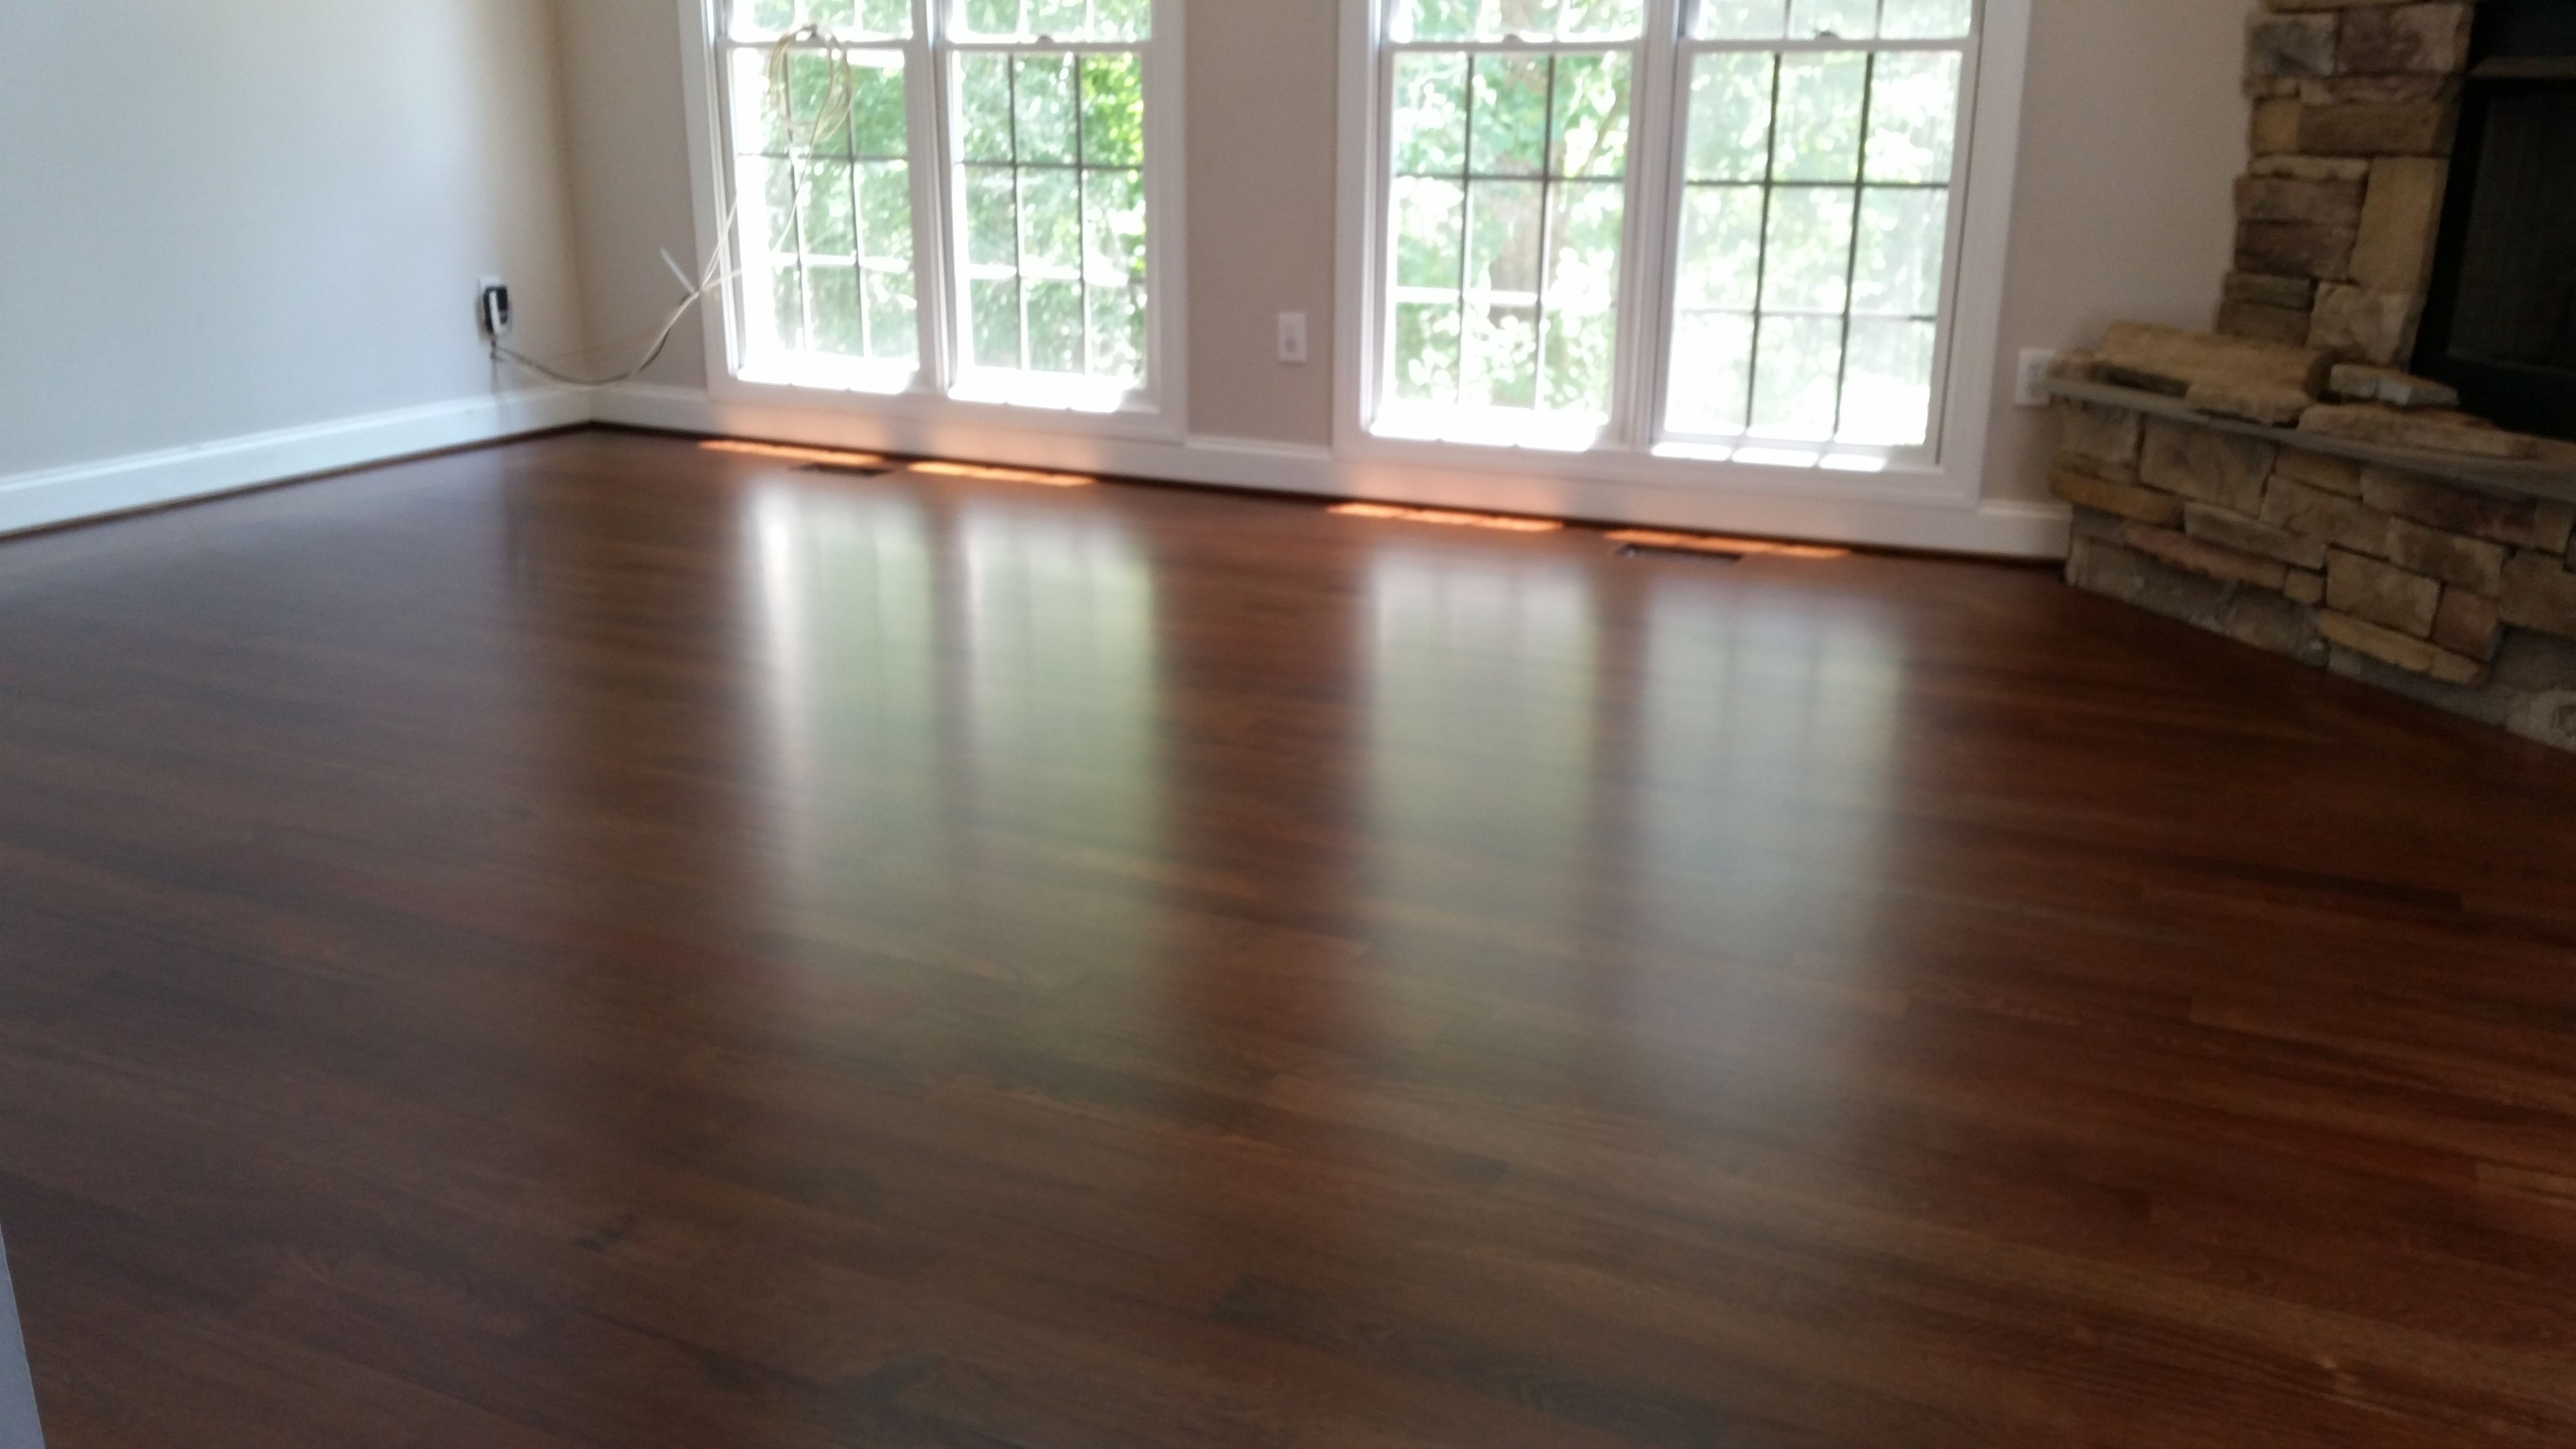 Hardwood Floor Refinishing Chicago Western Suburbs Of Jacobean Stain On Brazilian Cherry Hardwood Floors Stain Colors within Jacobean Stain On Brazilian Cherry Hardwood Floors Floor Stain Colors Brazilian Cherry Hardwood Flooring